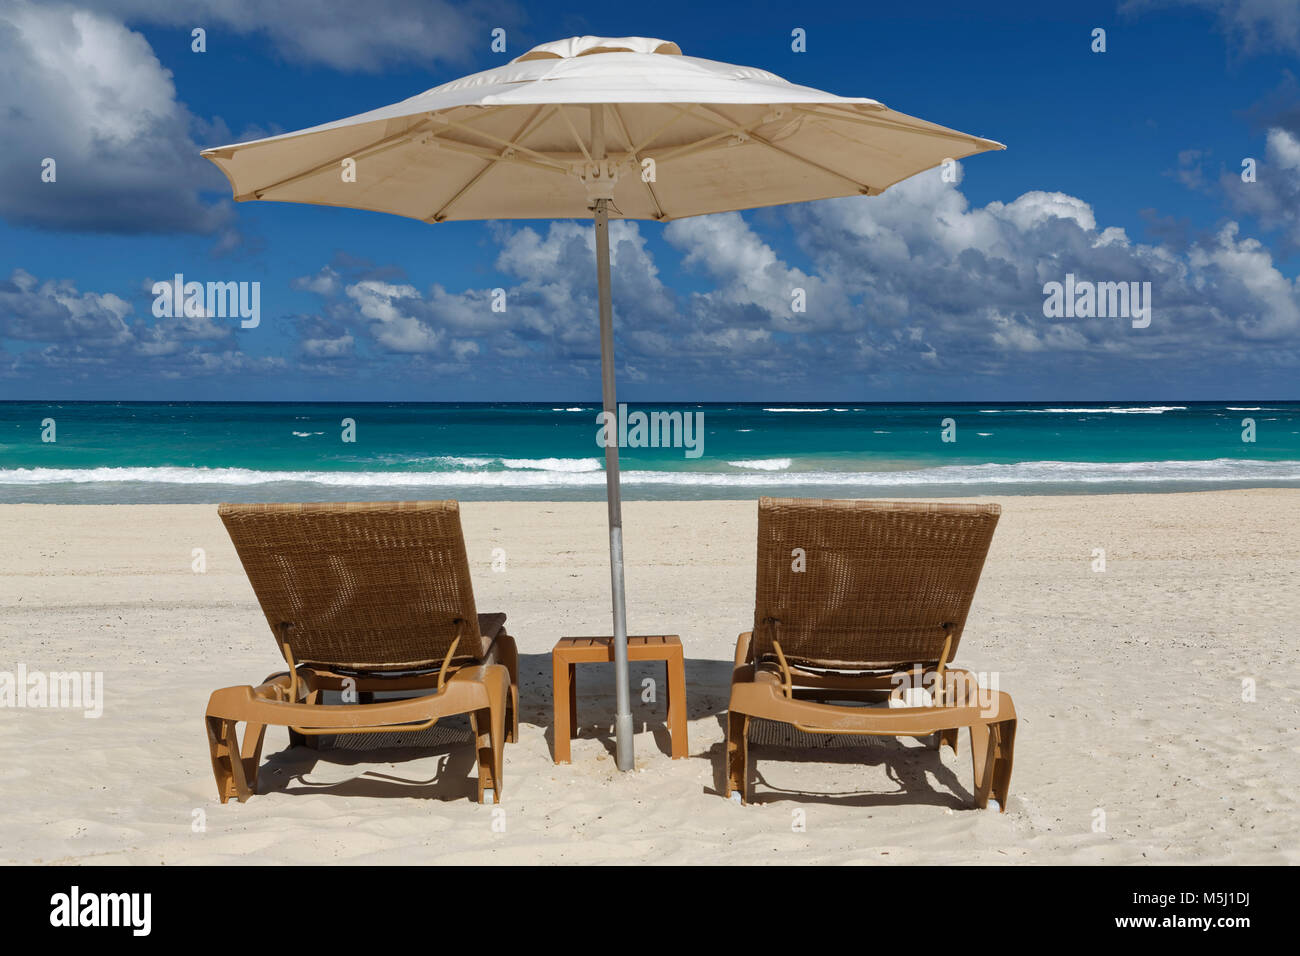 Carribean, Dominican Republic,  Playa Bavaro, beach with two sun loungers and beach umbrella - Stock Image